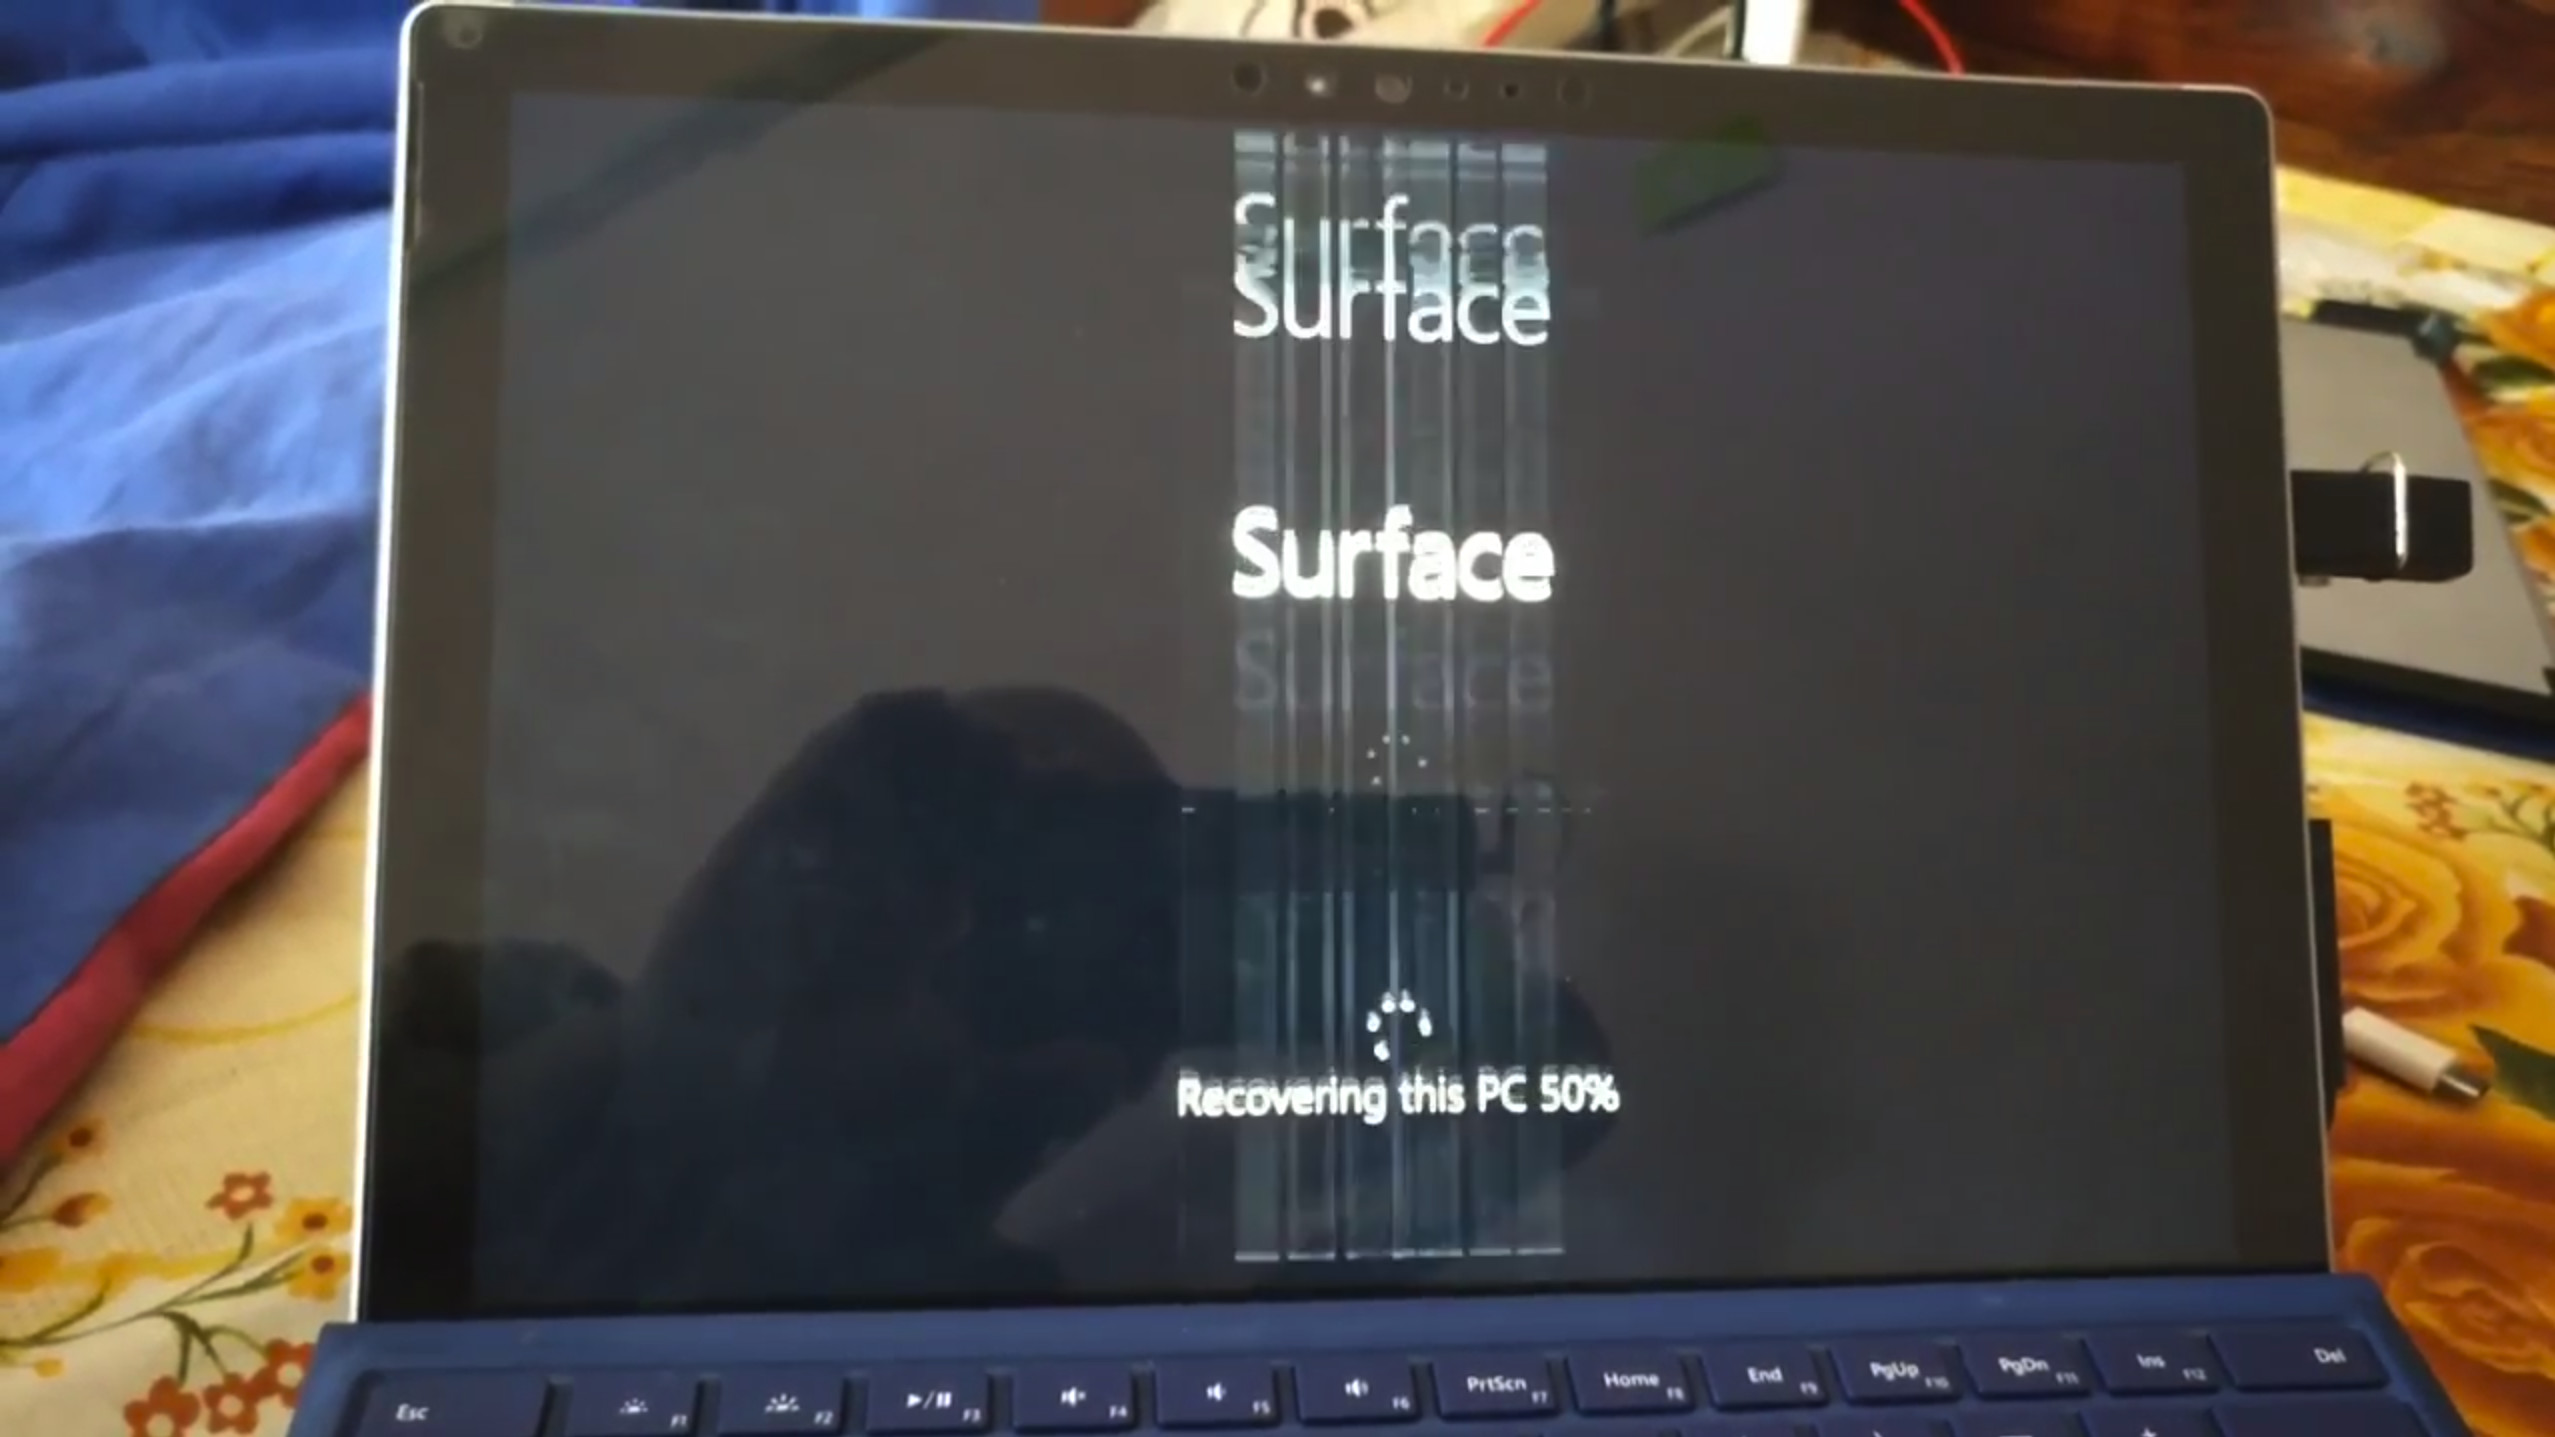 Surface Pro 4 Users Freezing Device to Solve Flickering Issue